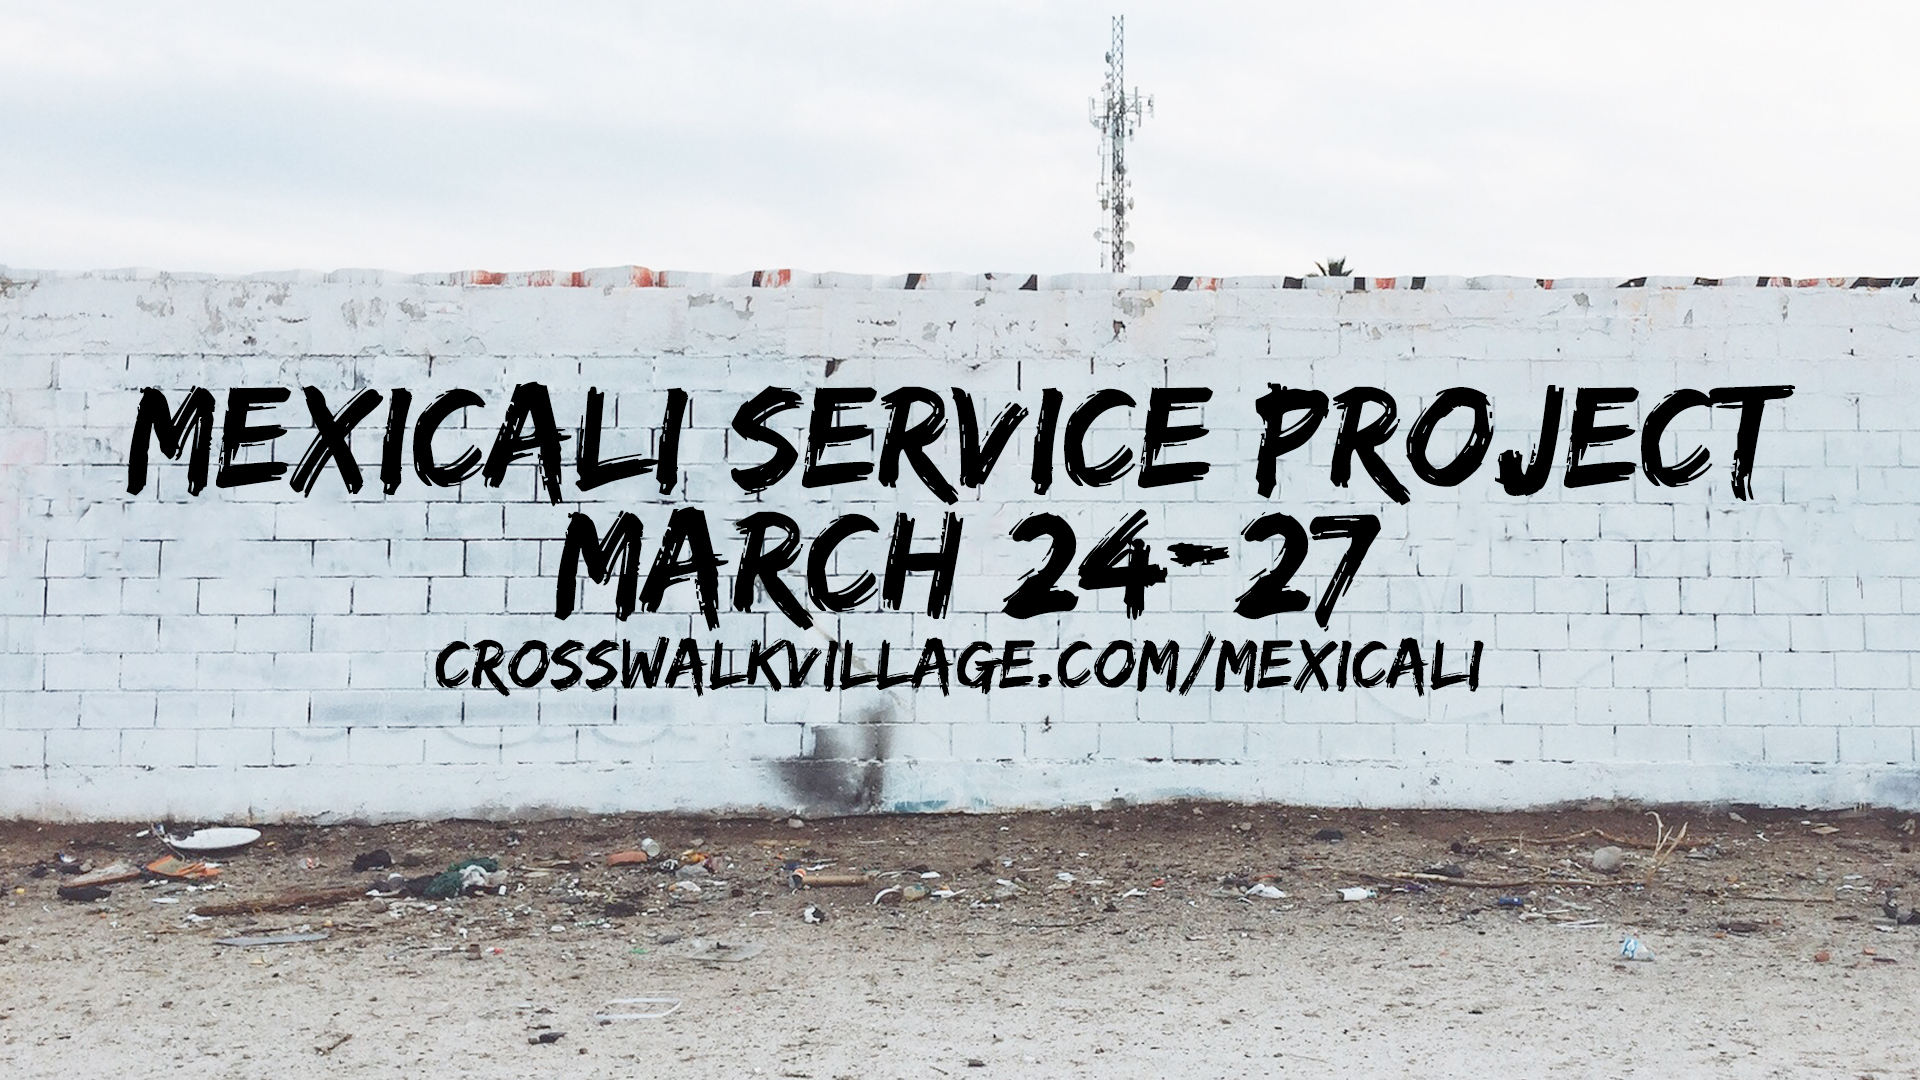 Mexicali Service Project.jpg